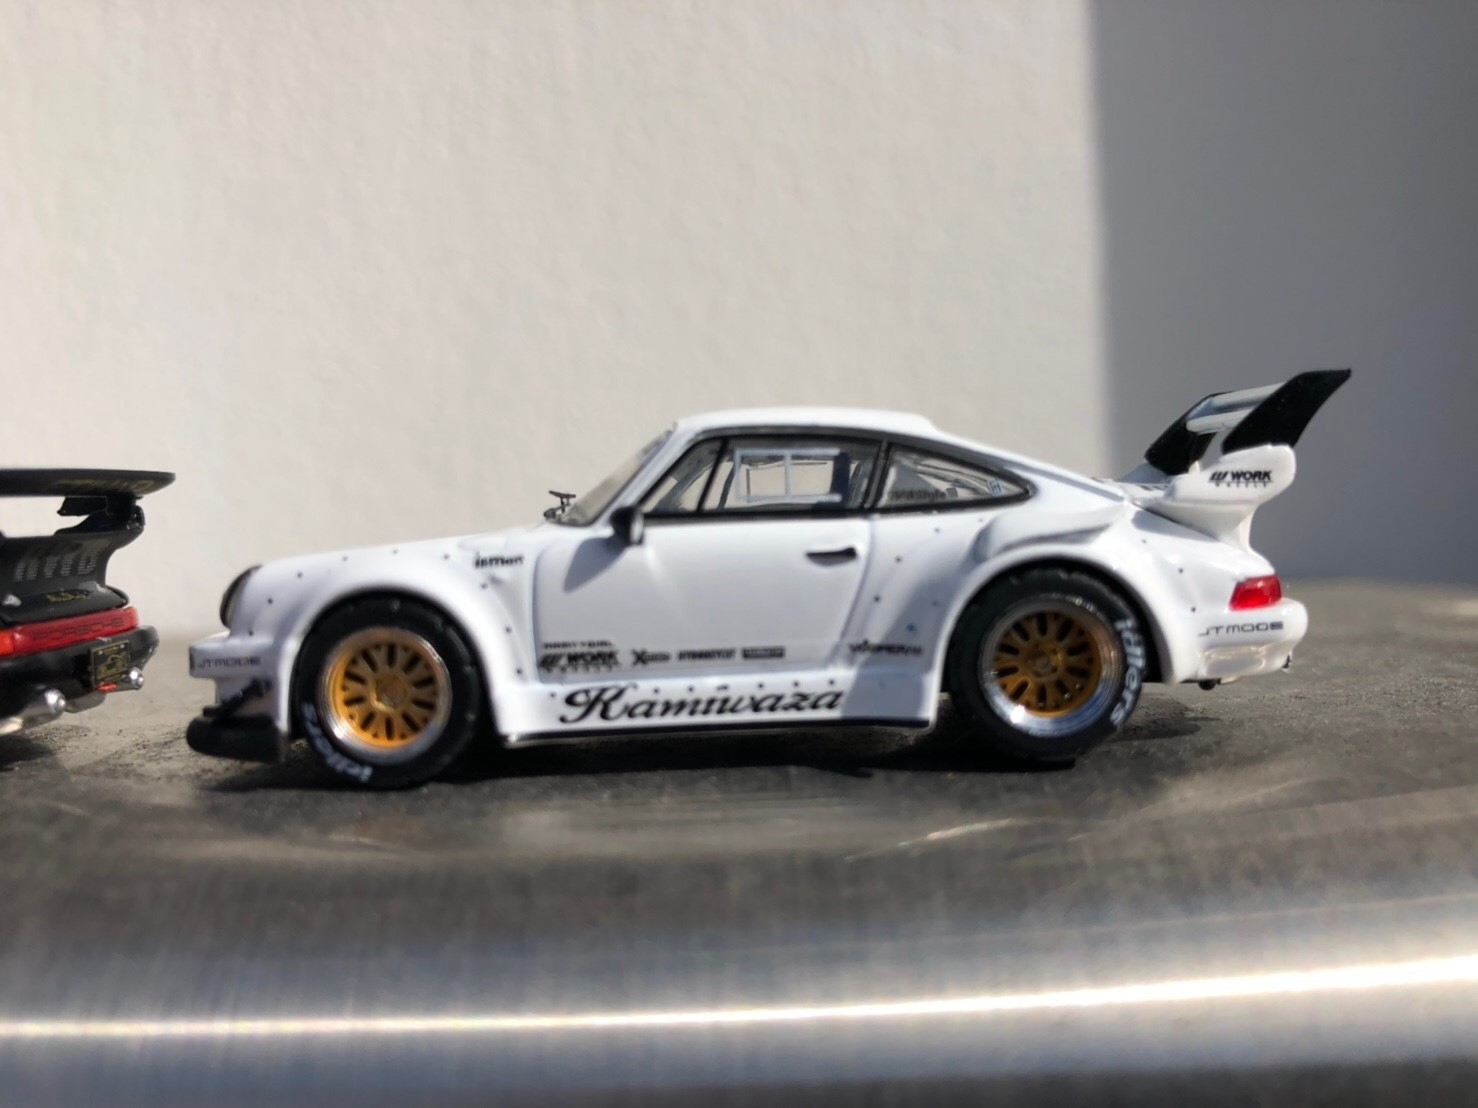 <Up to 1 item per person>Tarmac Works 1/64 RWB  930 White